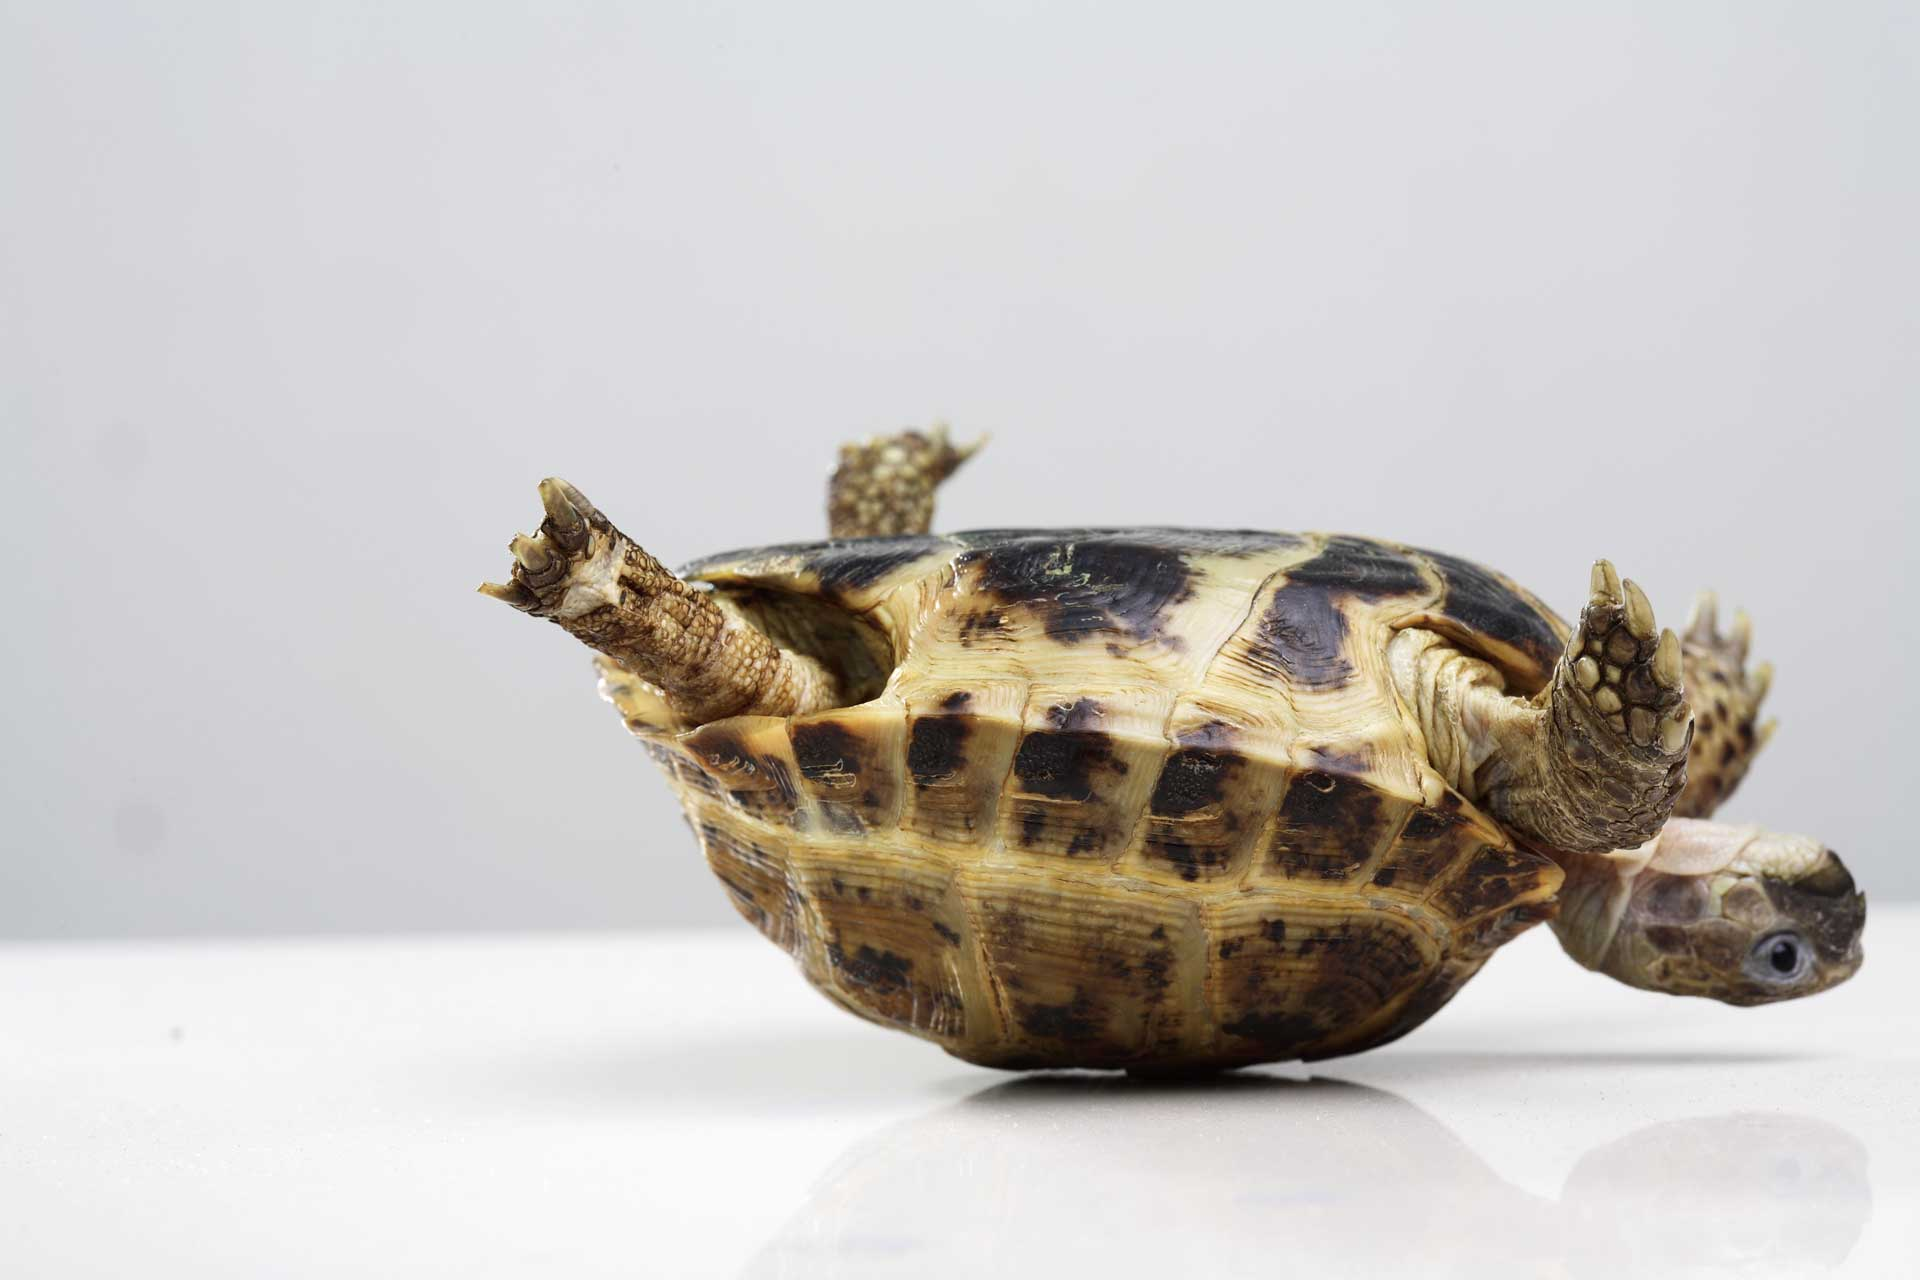 upside down tortoise showing resilience and positivity